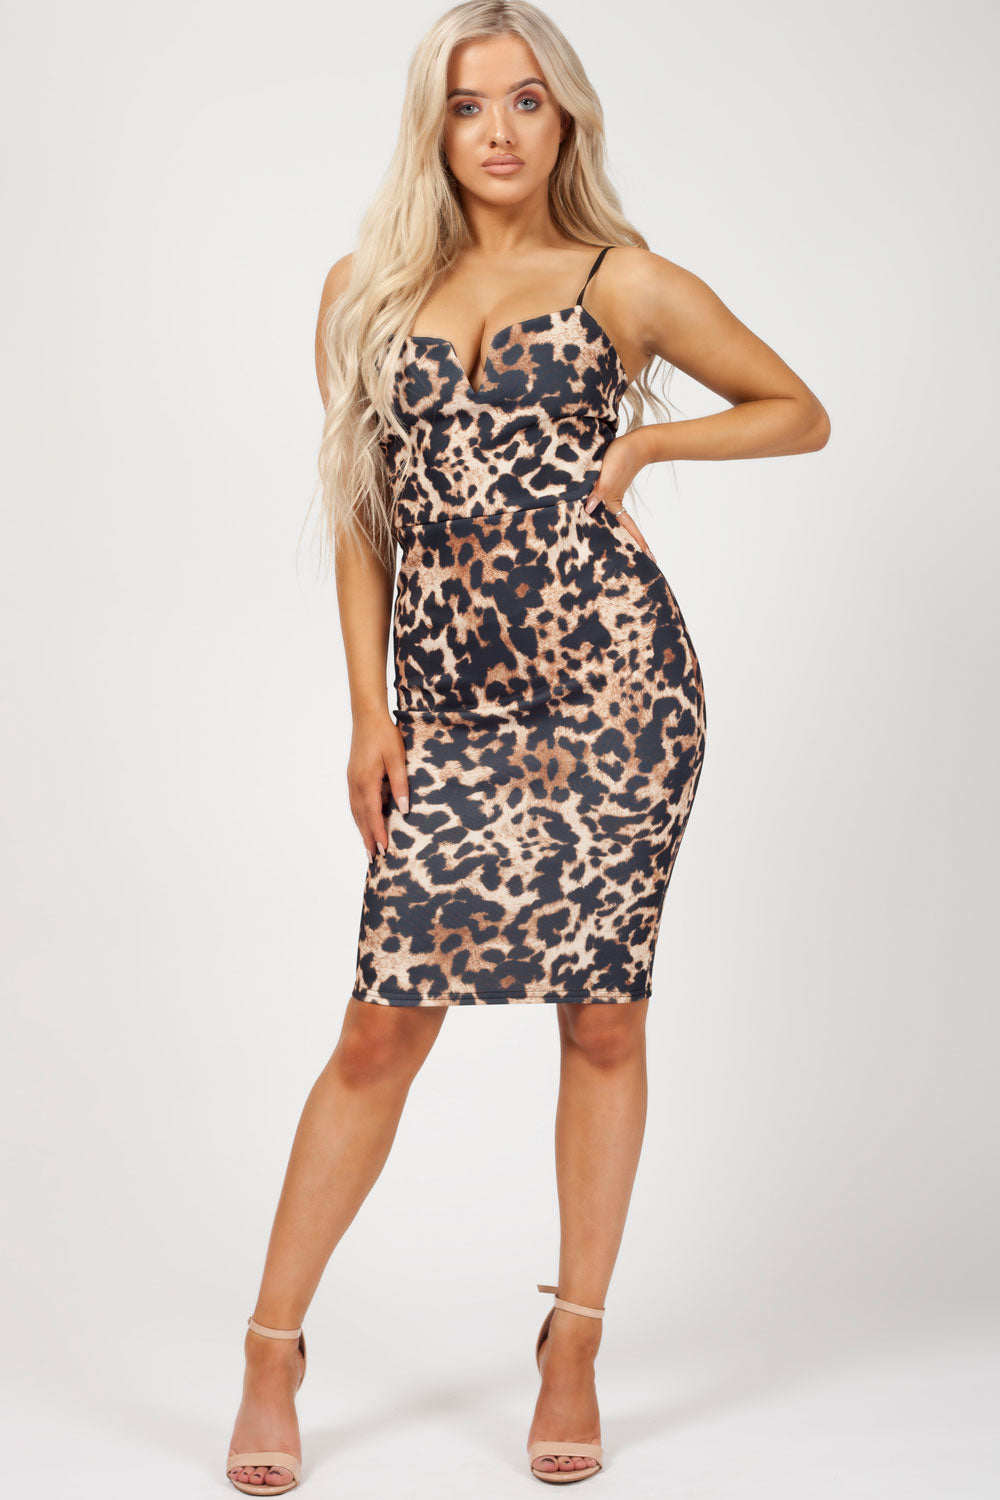 leopard print dress uk